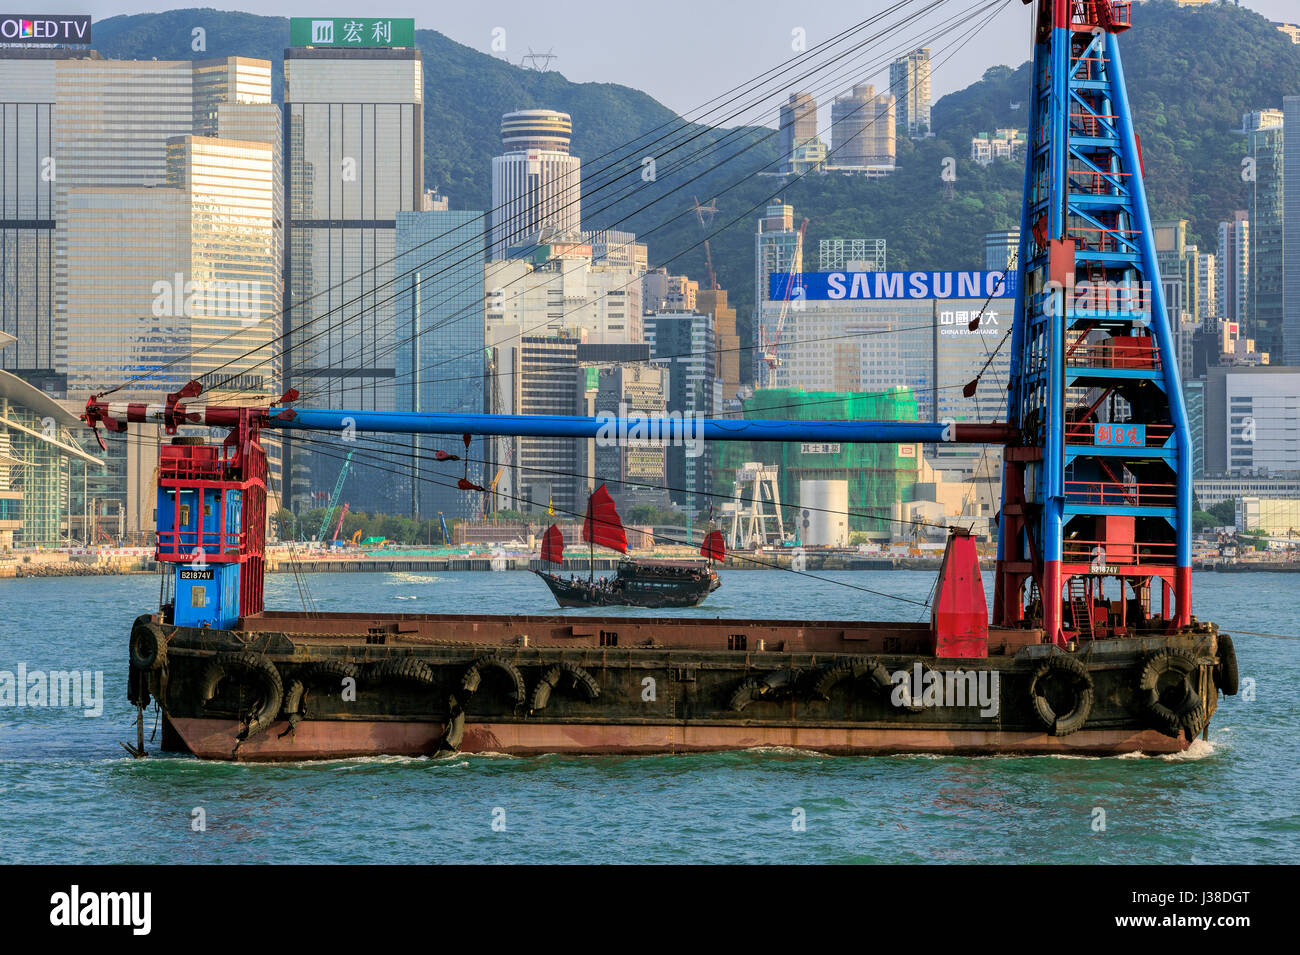 Traditional Chinese junk and floating crane boat, Victoria harbor, Hong Kong, China. - Stock Image